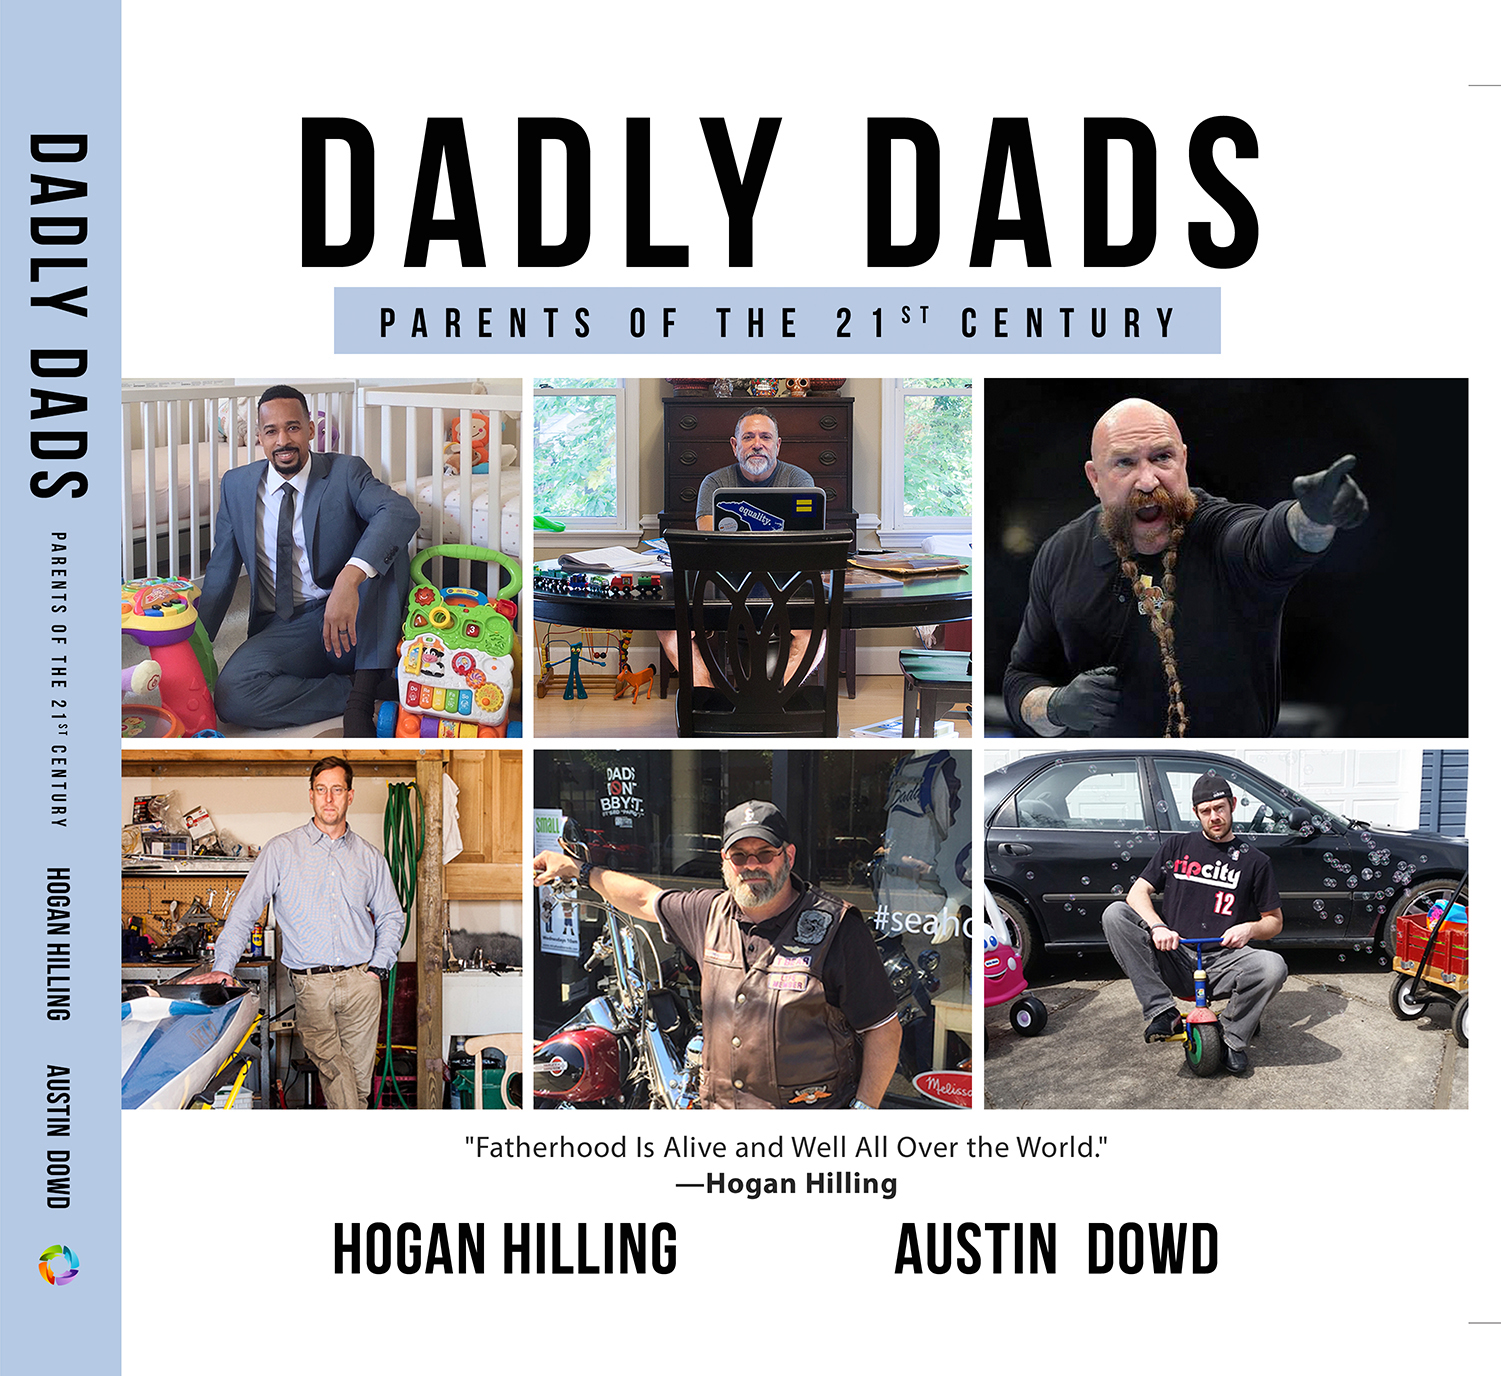 DADLY Dads: Parent of the 21st Century